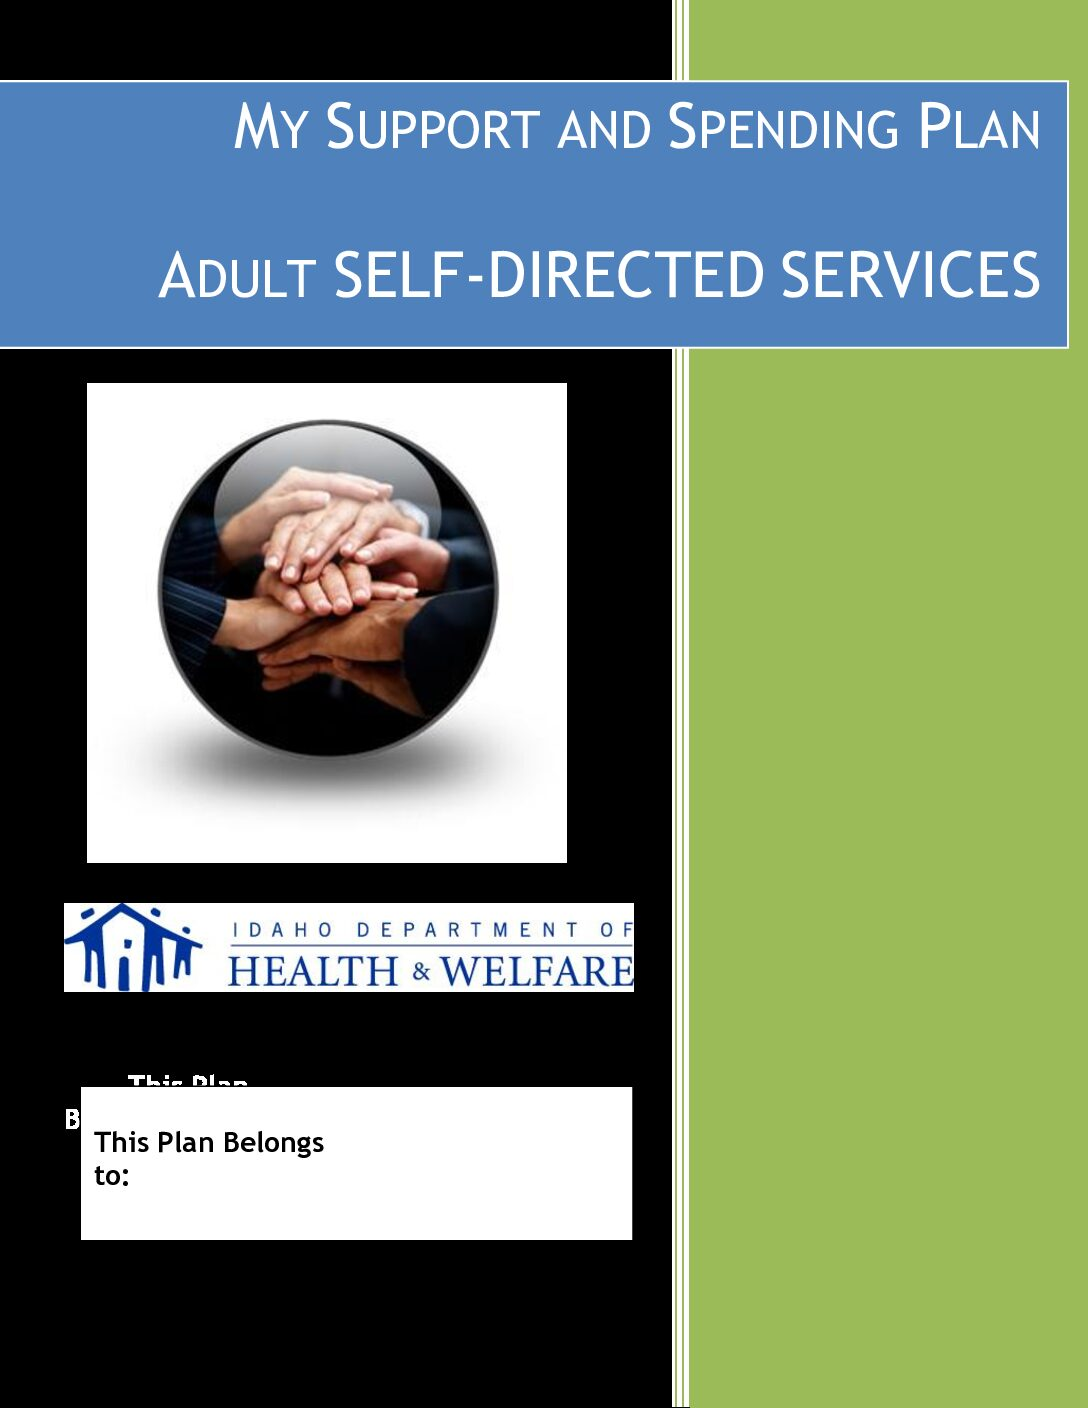 My Support & Spending Plan: Adult Self-Directed Services